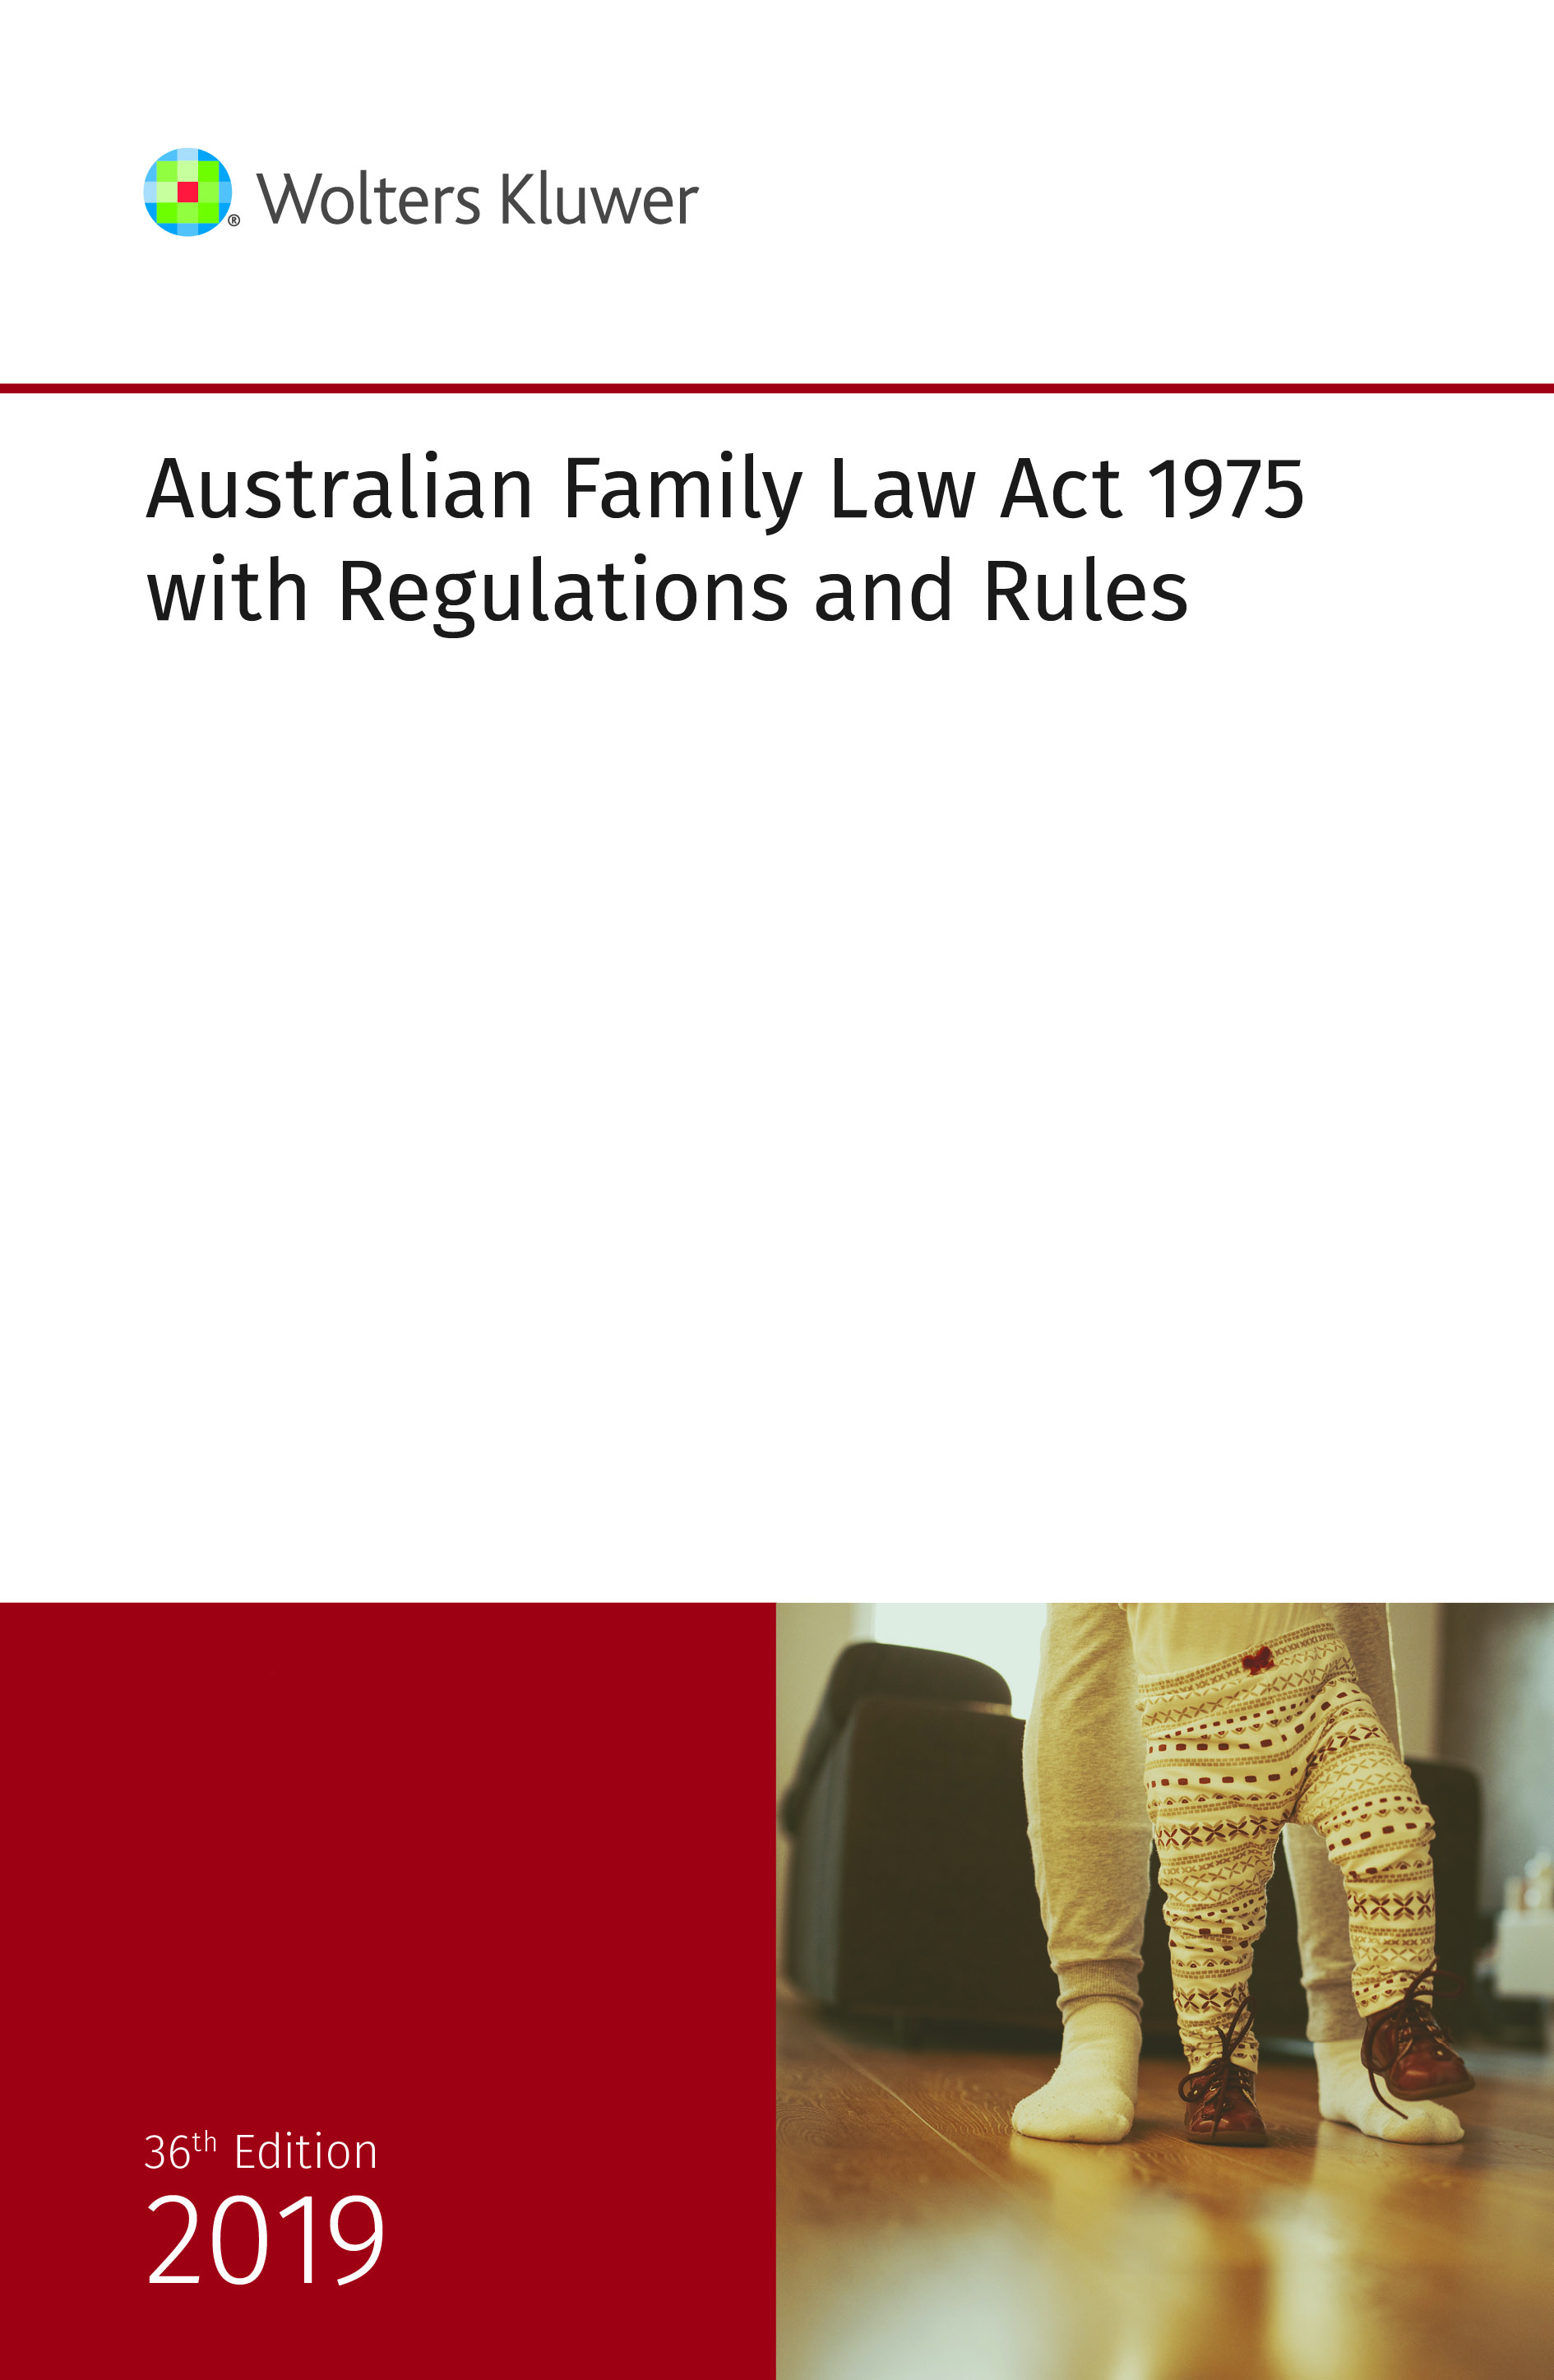 Australian Family Law Act 1975 with Regulations and Rules 2019